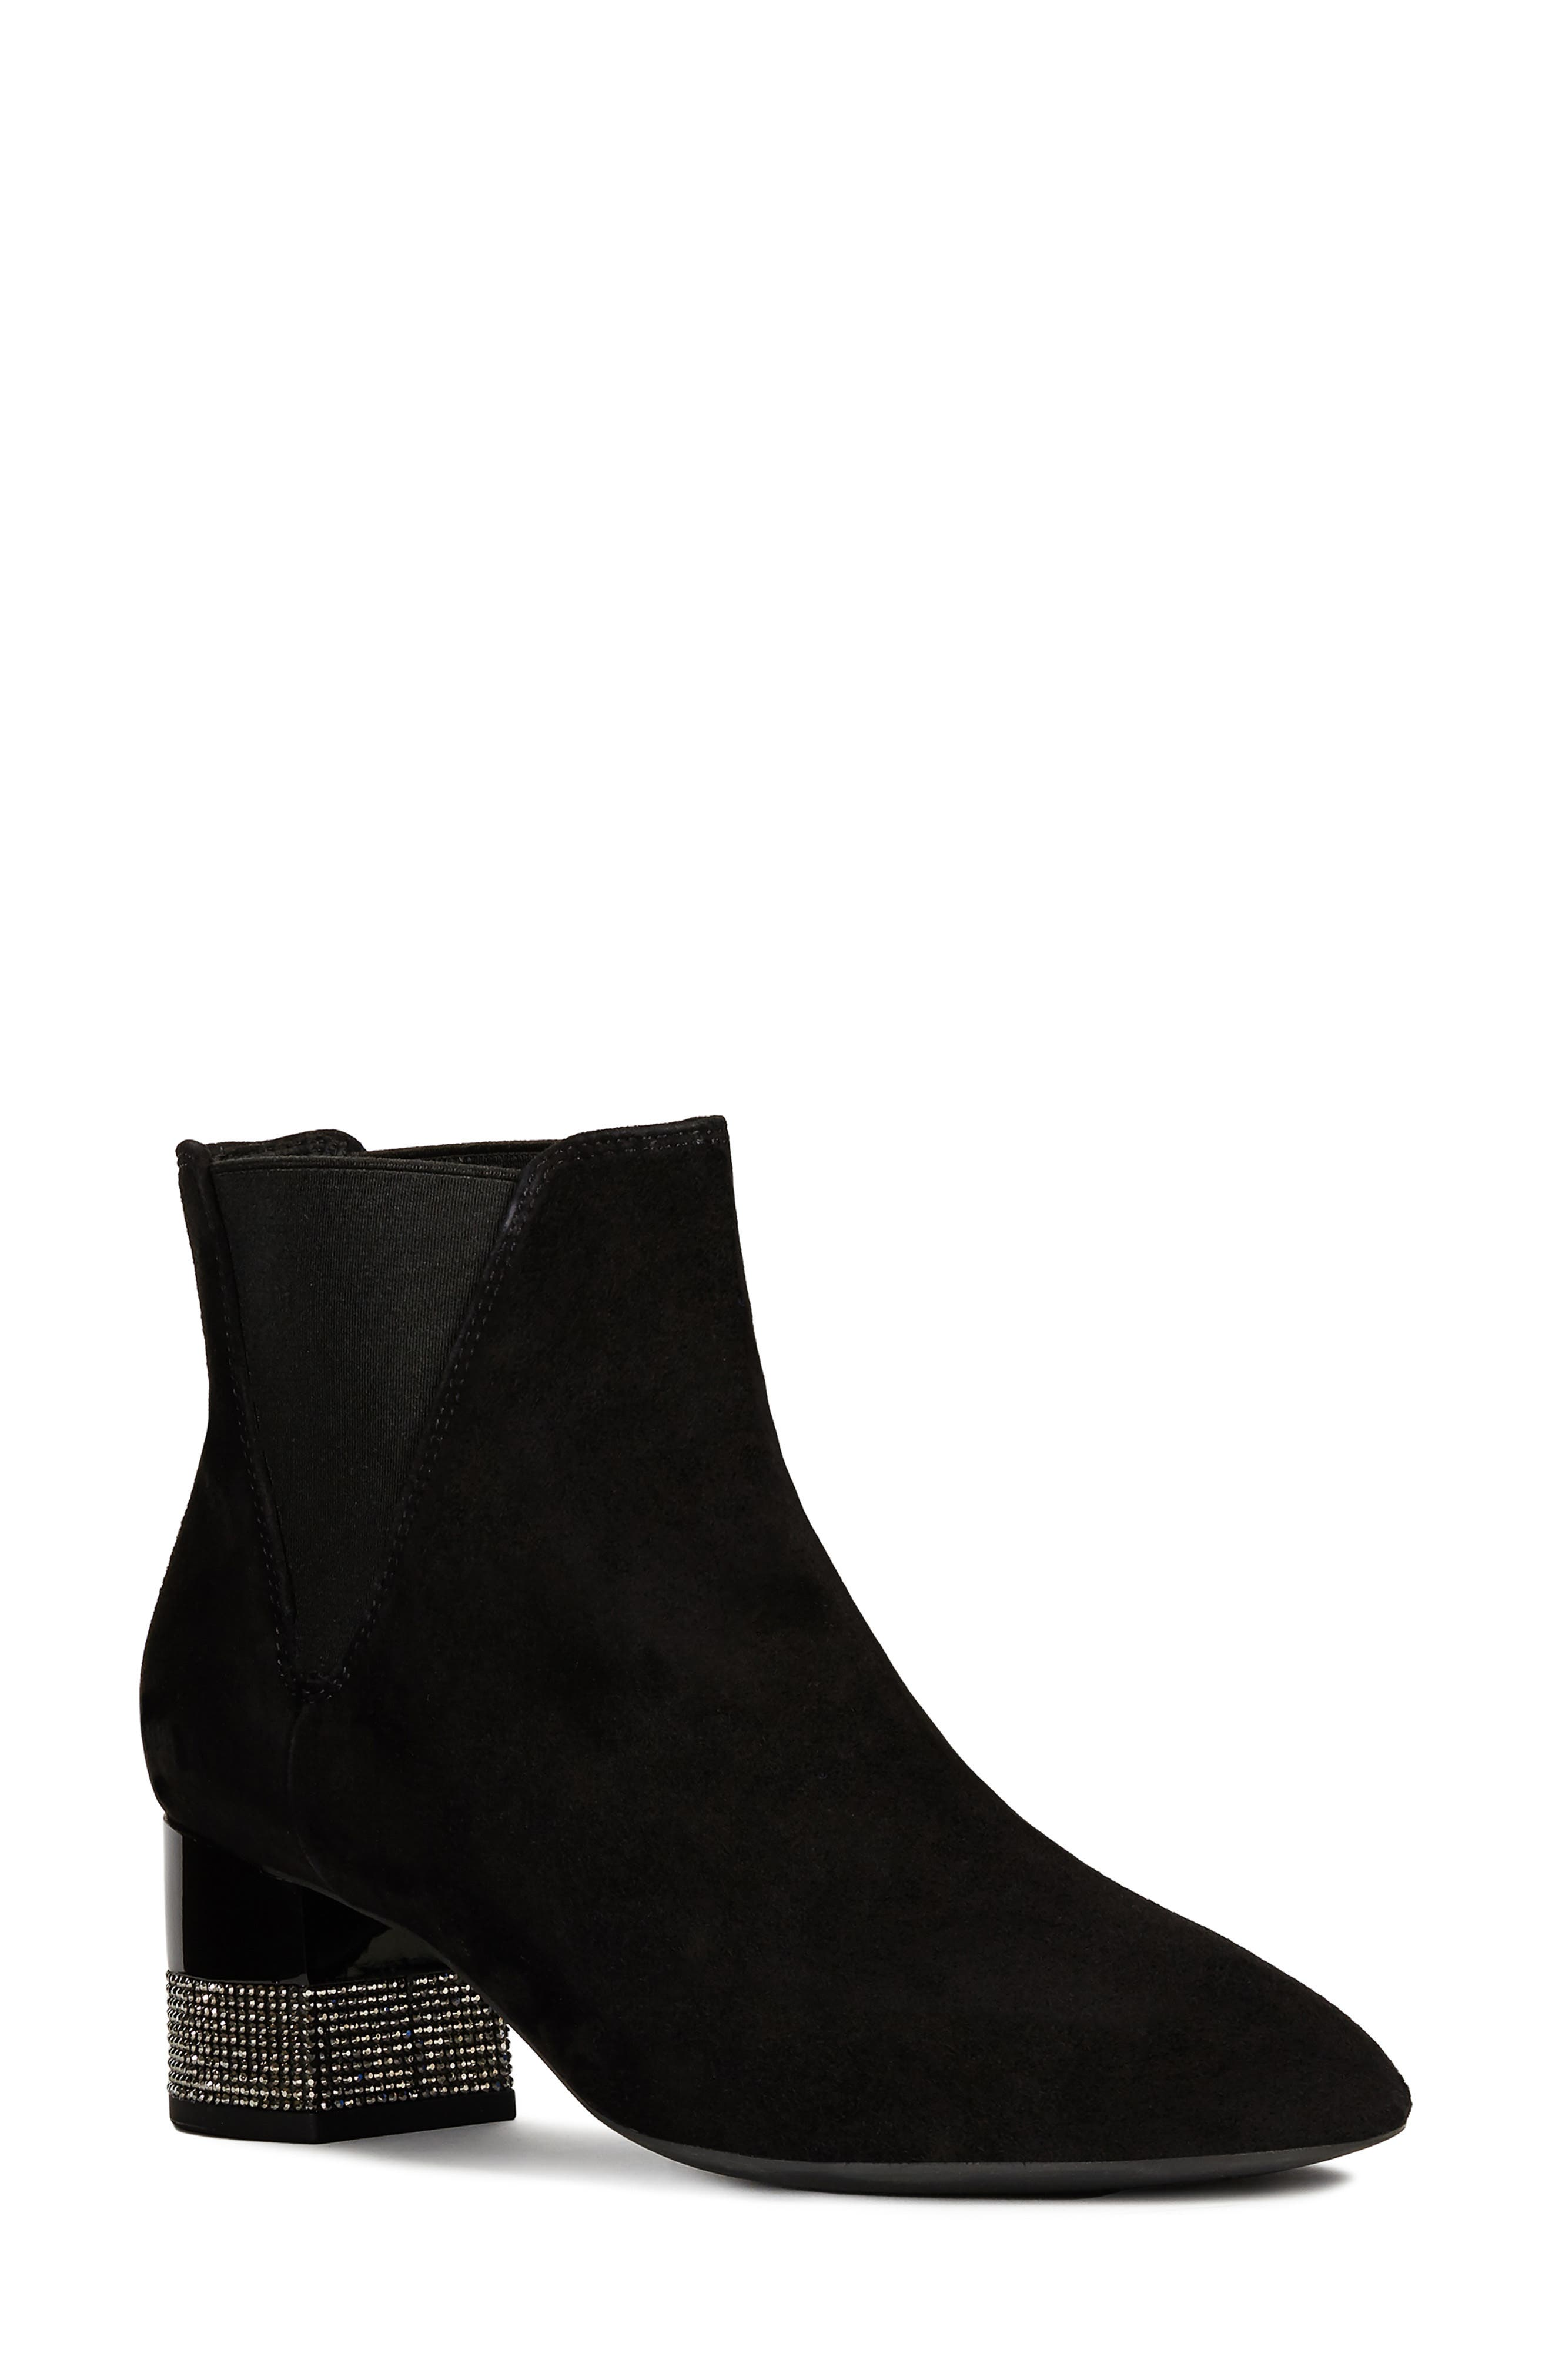 GEOX Chloo Chelsea Waterproof Waterproof Bootie, Main, color, BLACK SUEDE